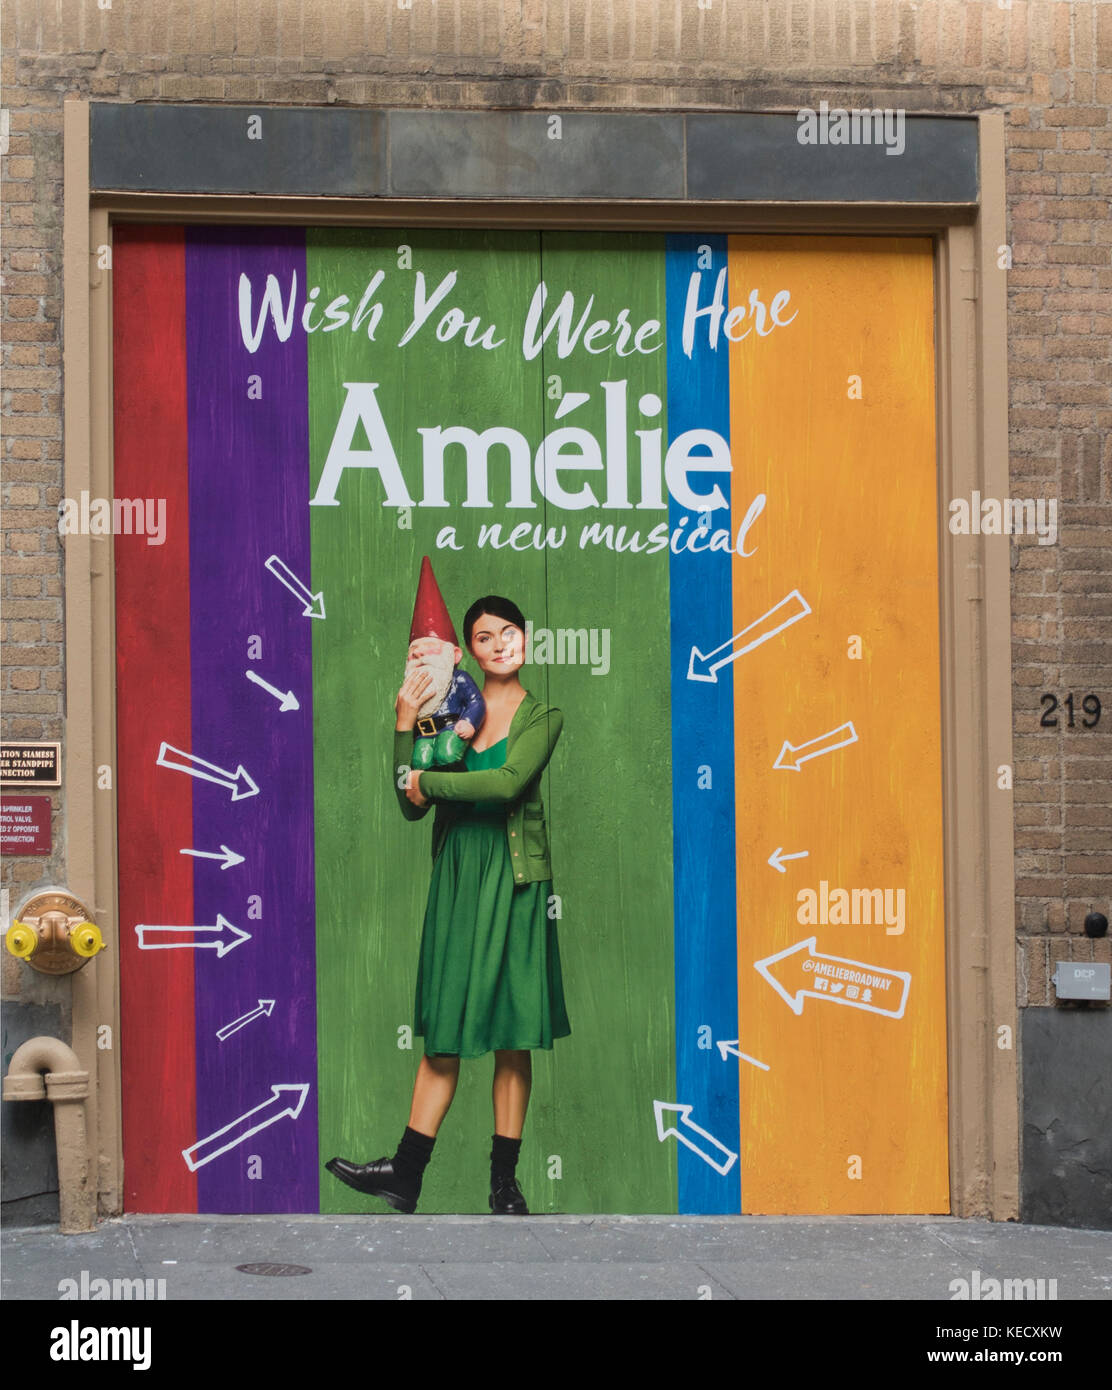 Amelie Broadway theater marquee NYC Stock Photo